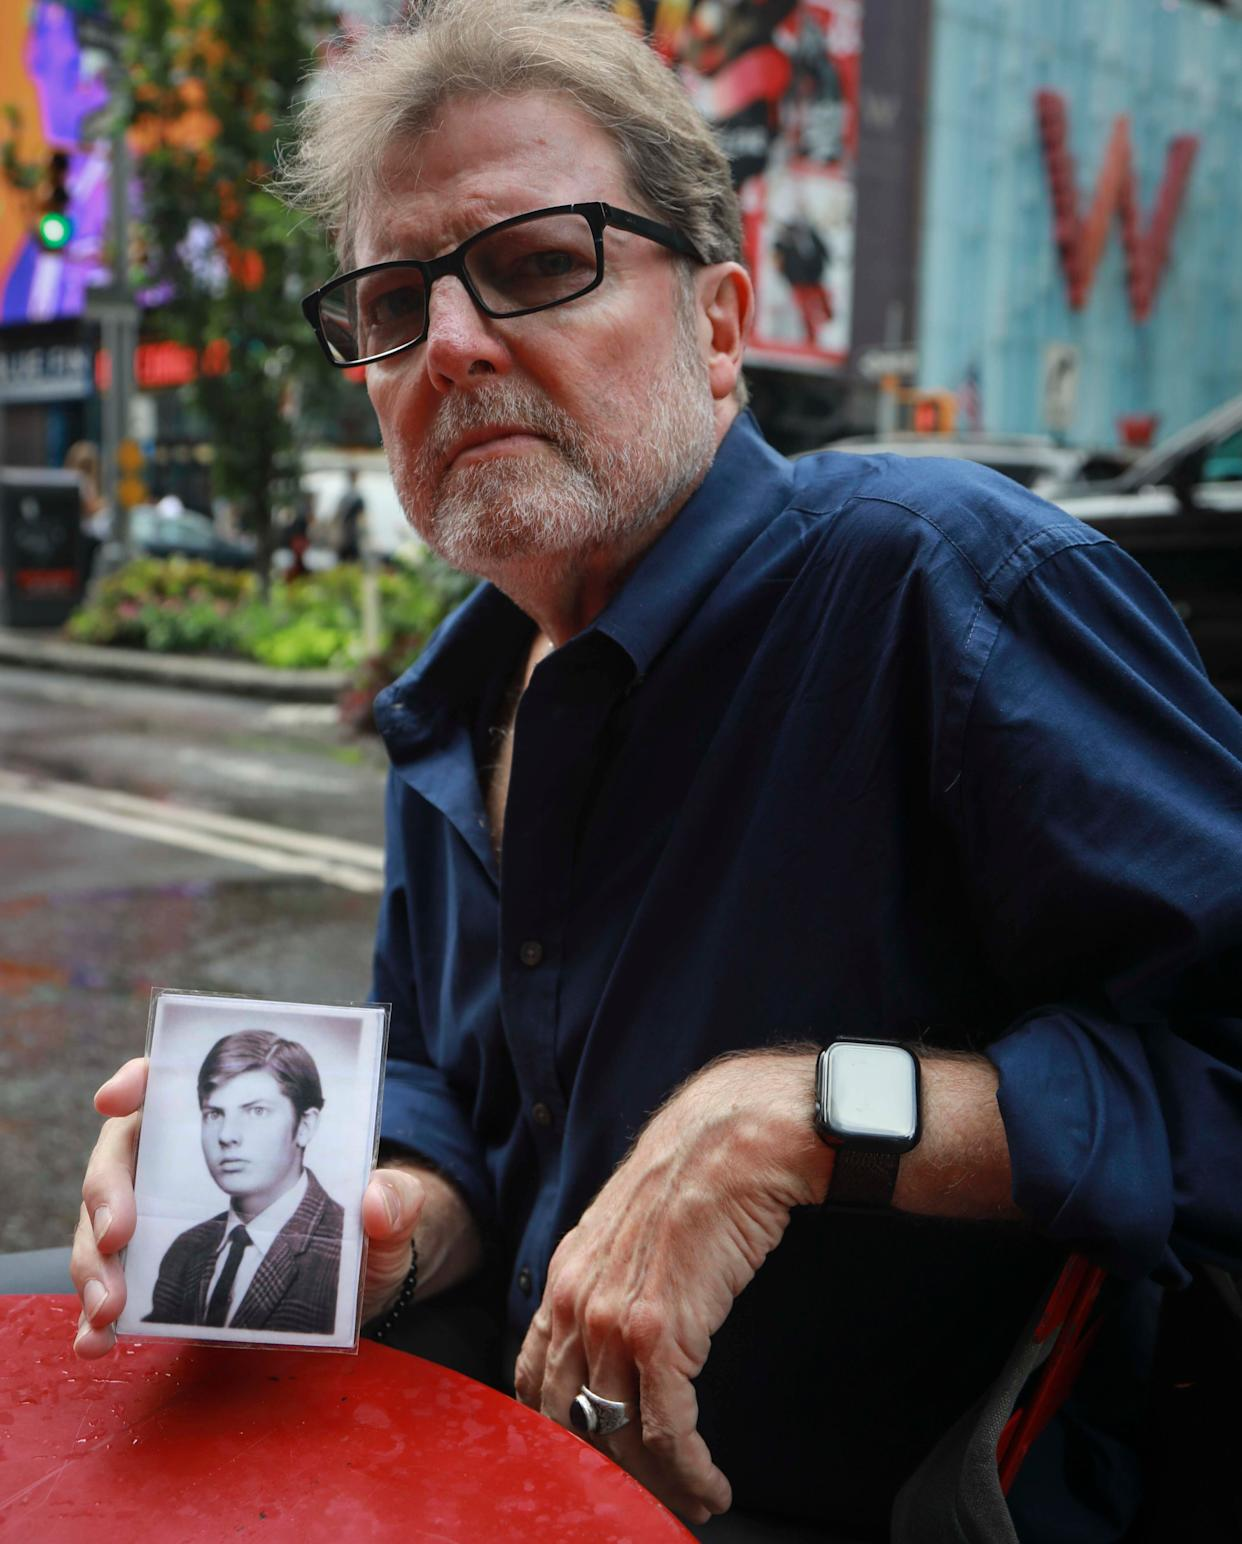 Brian Toale, a 66-year-old who says he was molested by an employee at a Catholic high school in Long Island, holds a photo of himself at 16 years old. (Photo: Bebeto Matthews/ASSOCIATED PRESS)